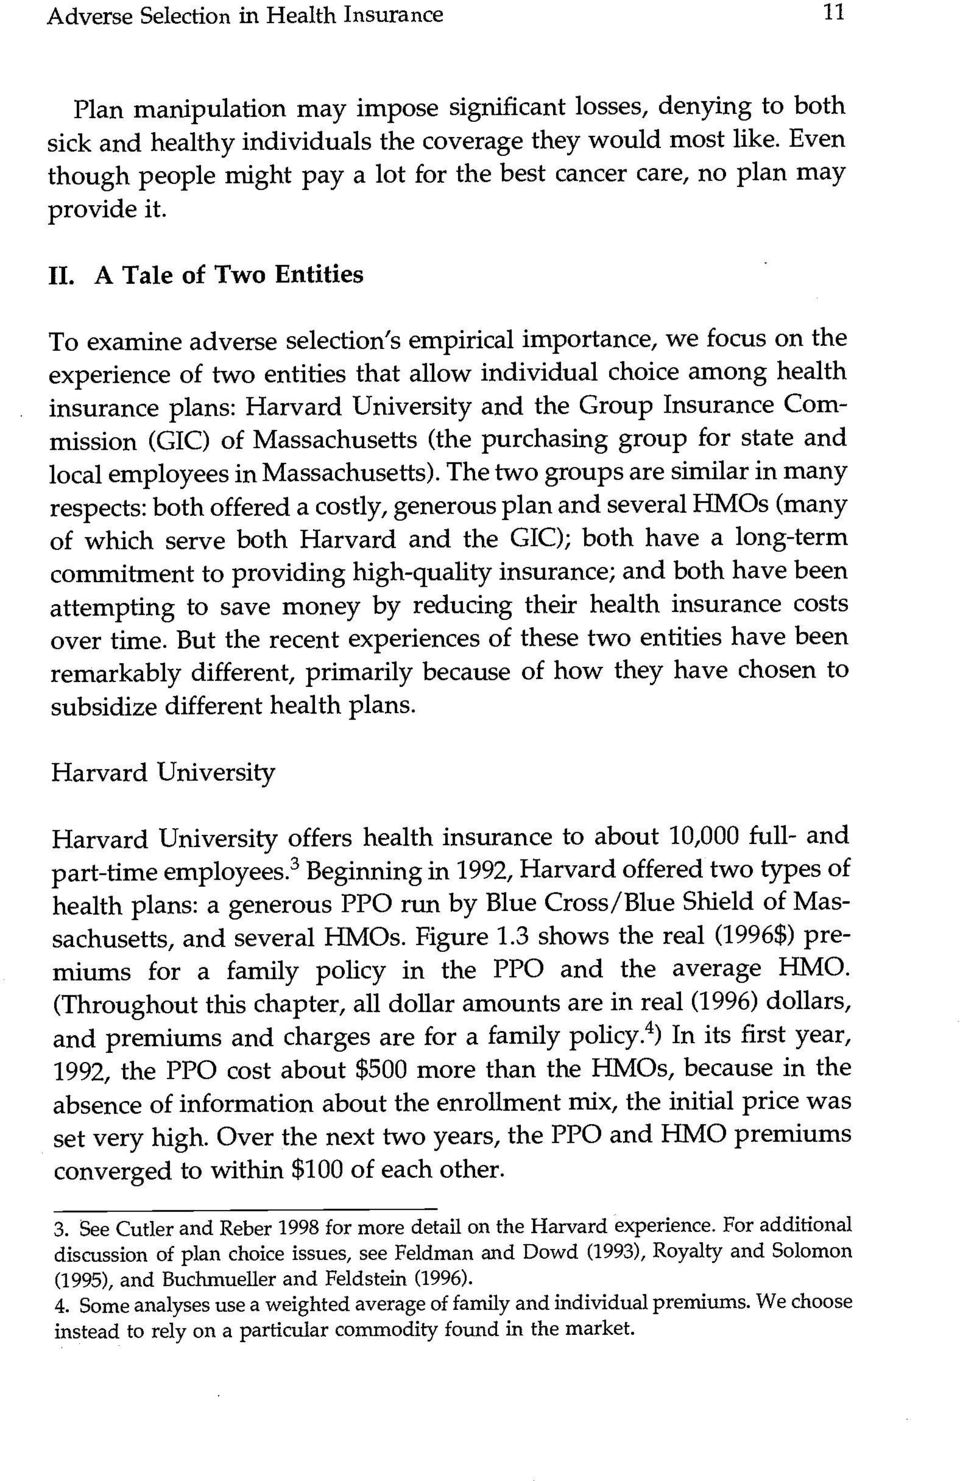 A Tale of Two Entities To examine adverse selection's empirical importance, we focus on the experience of two entities that allow individual choice among health insurance plans: Harvard University